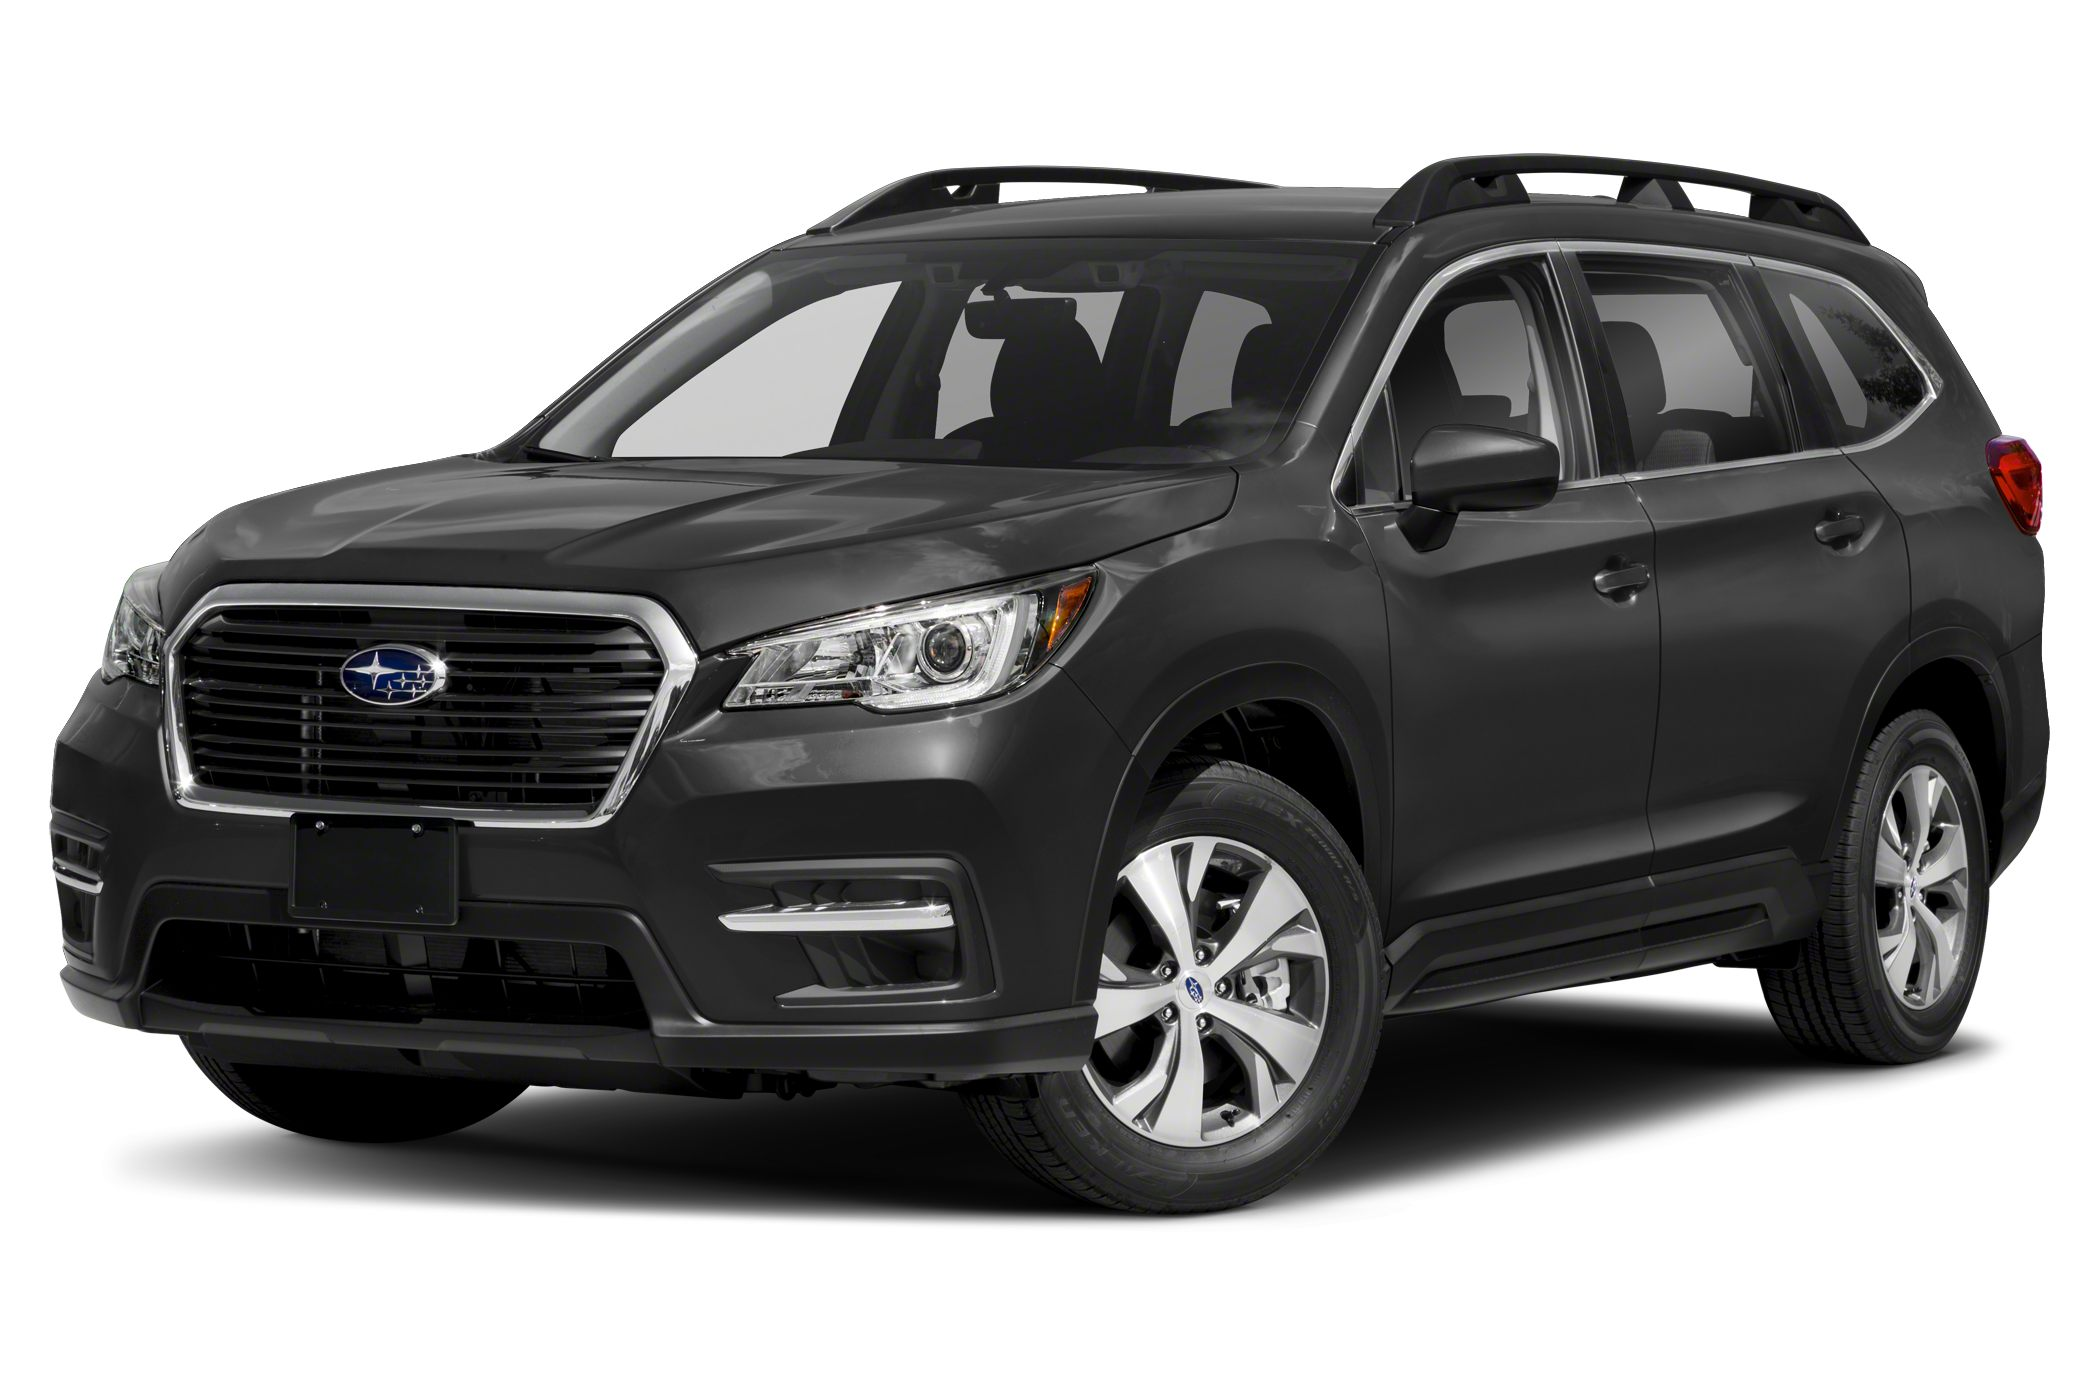 2019 Subaru Ascent Deals Prices Incentives Leases Overview